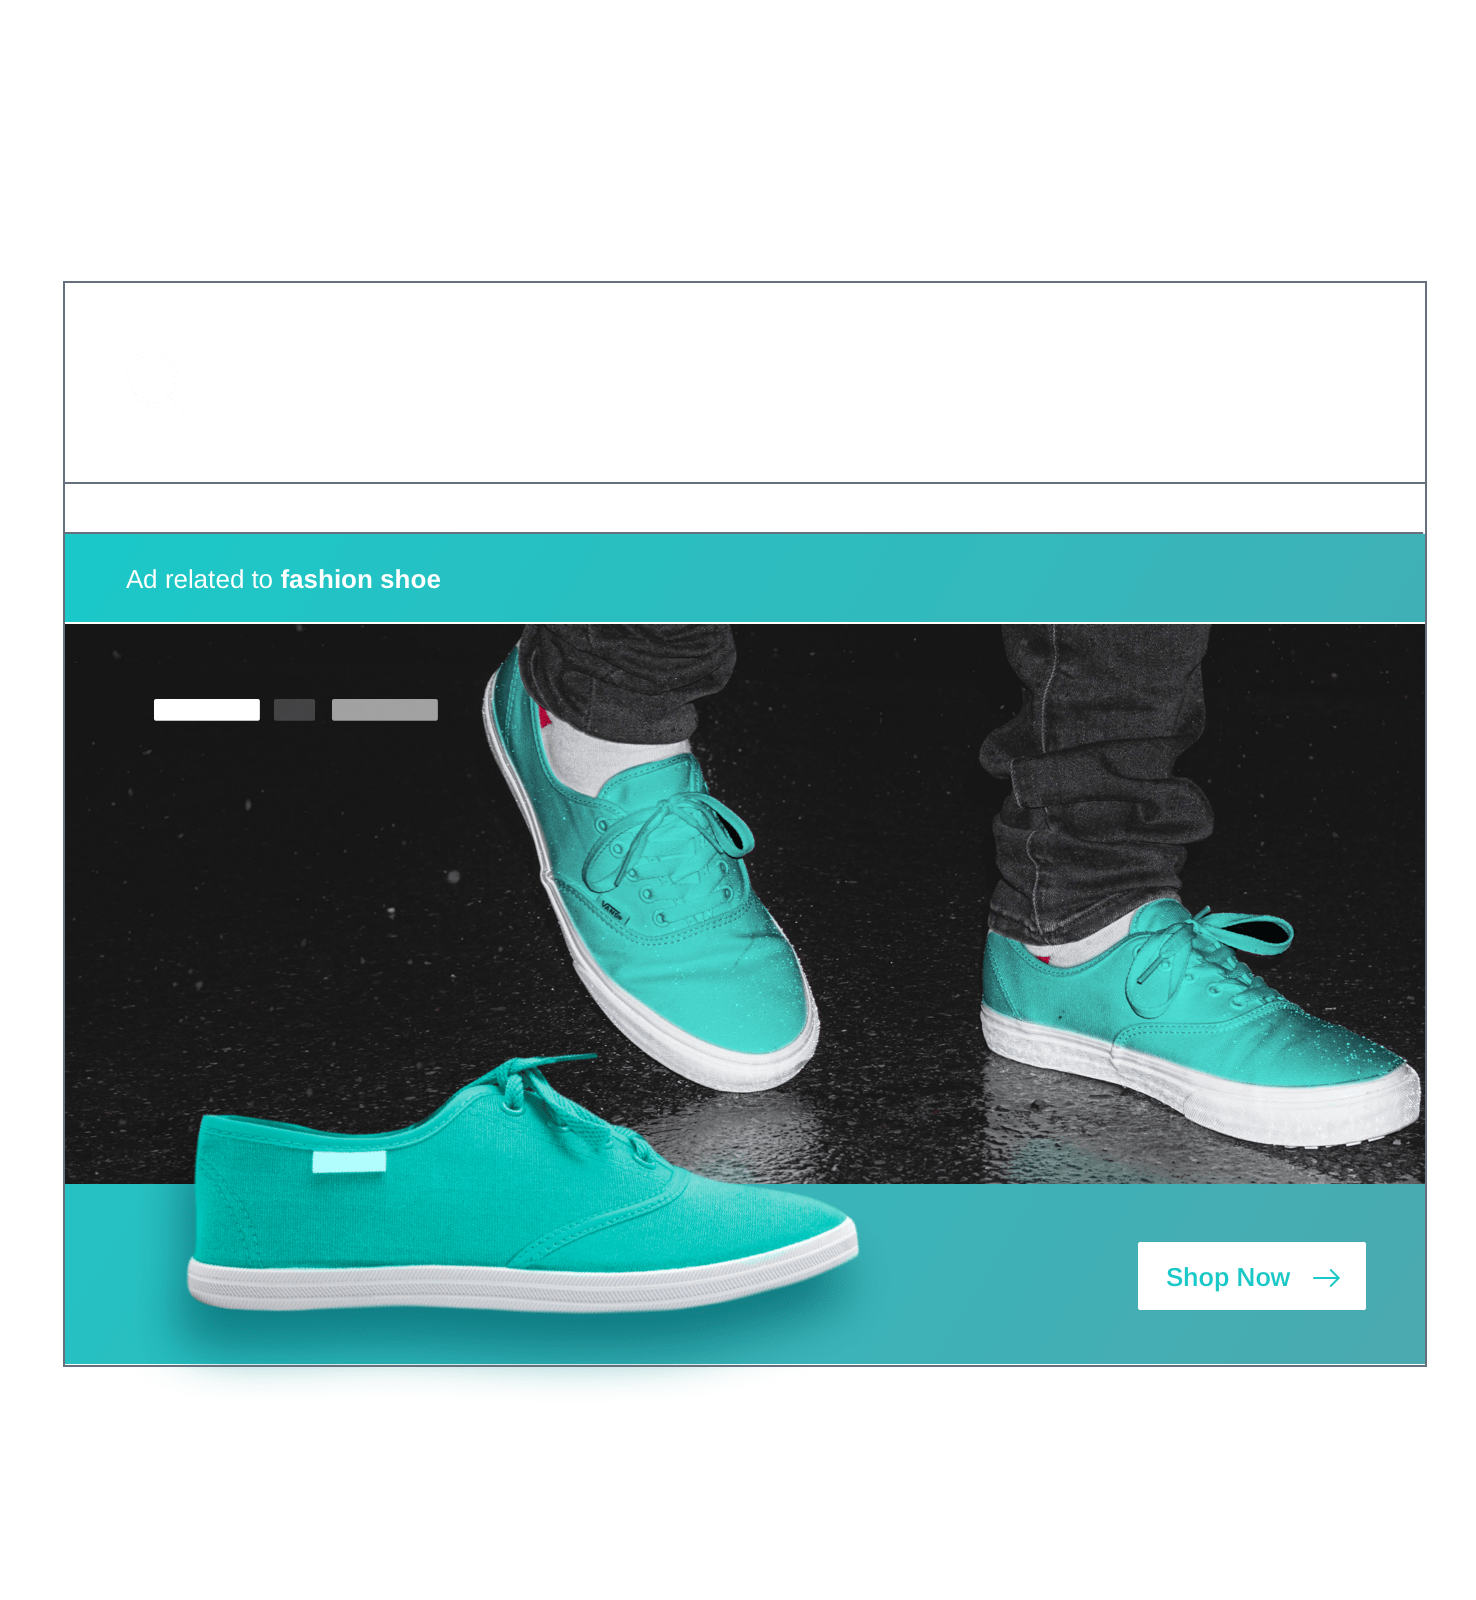 Paid search advertising for a teal sneaker